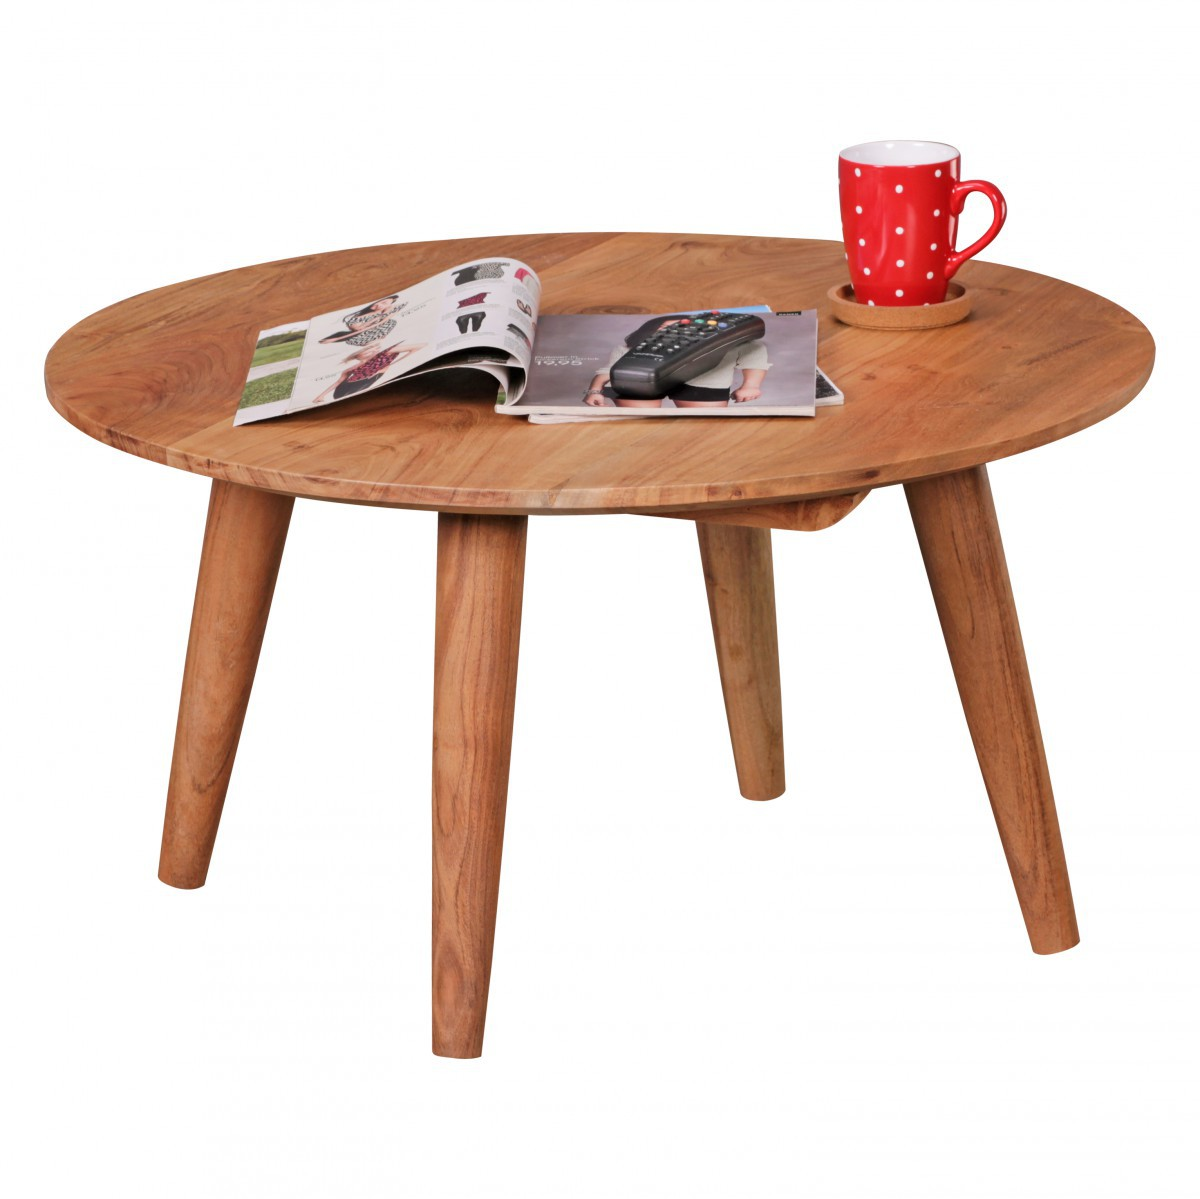 Finebuy table basse en bois massif acacia table basse ronde 75 x 40 cm ferme - Grande table basse ronde ...